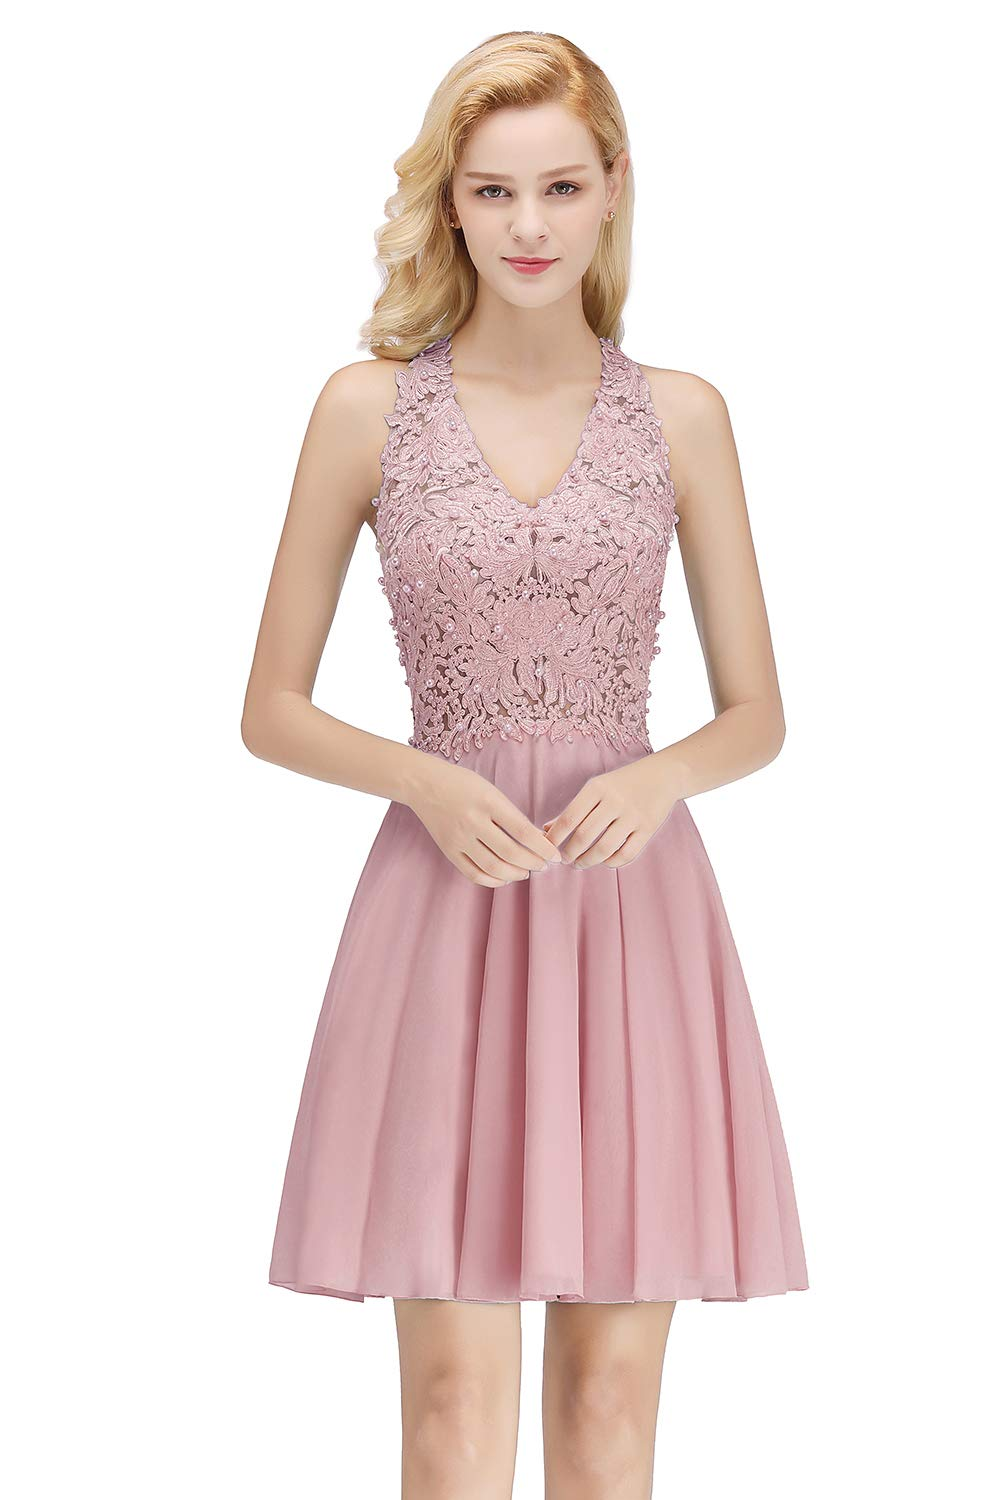 d7c7f6b75048 MisShow 2018 Women's Cocktail Dresses Lace Applique Short Prom Dress Dusty  Pink US12. Home/Prom Dresses/MisShow 2018 Women's Cocktail Dresses ...